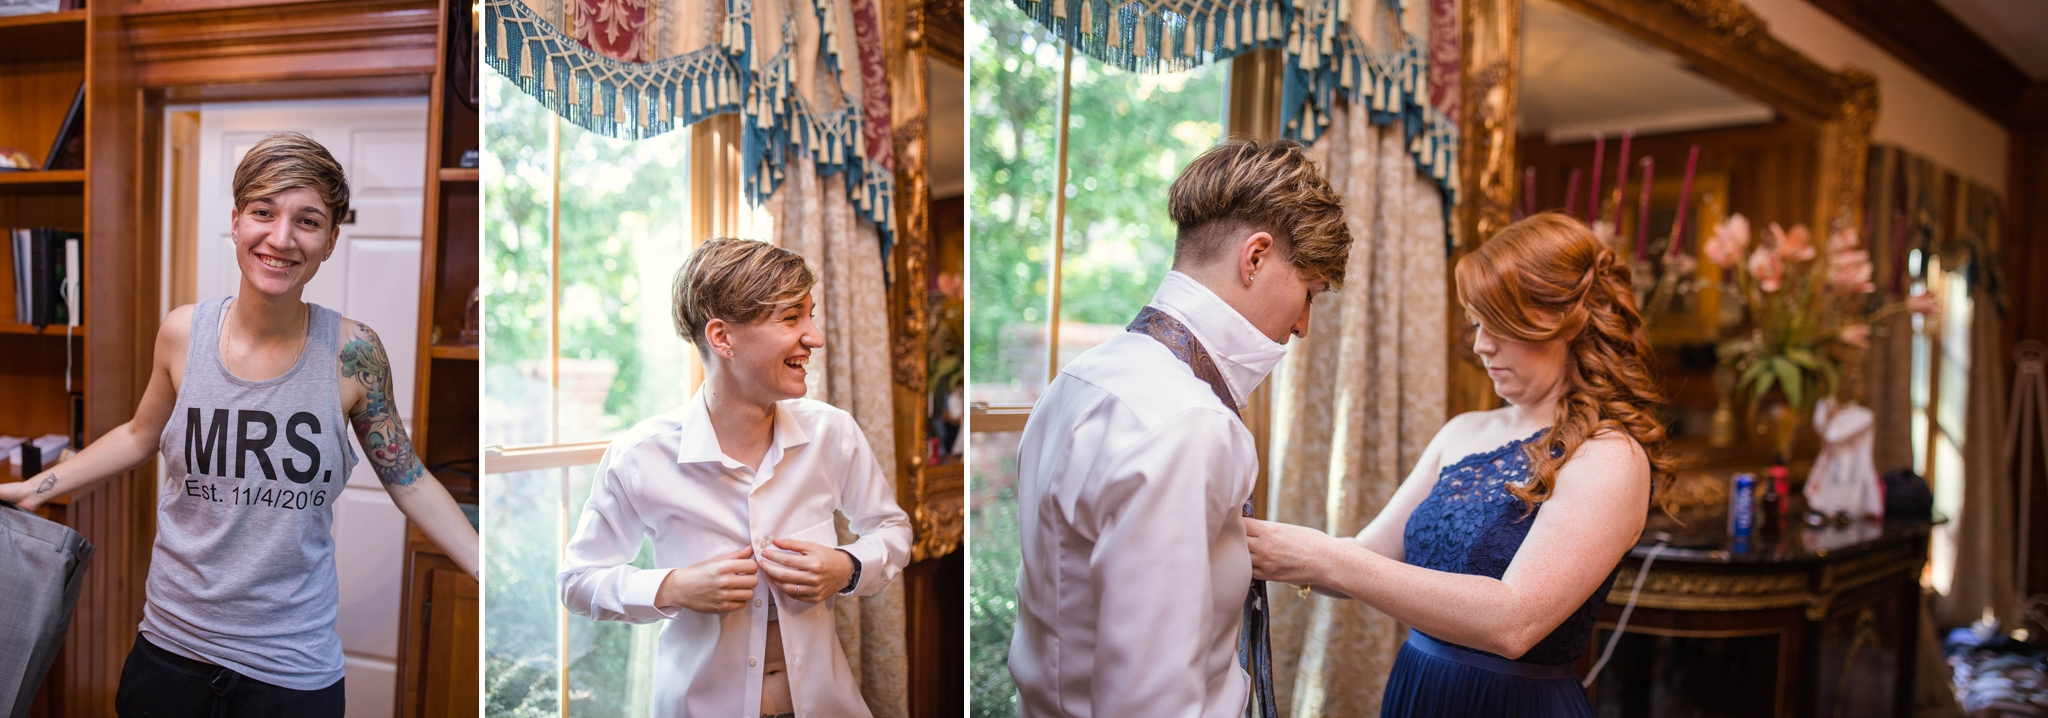 Same Sex Wedding Photography in Raleigh, North Carolina